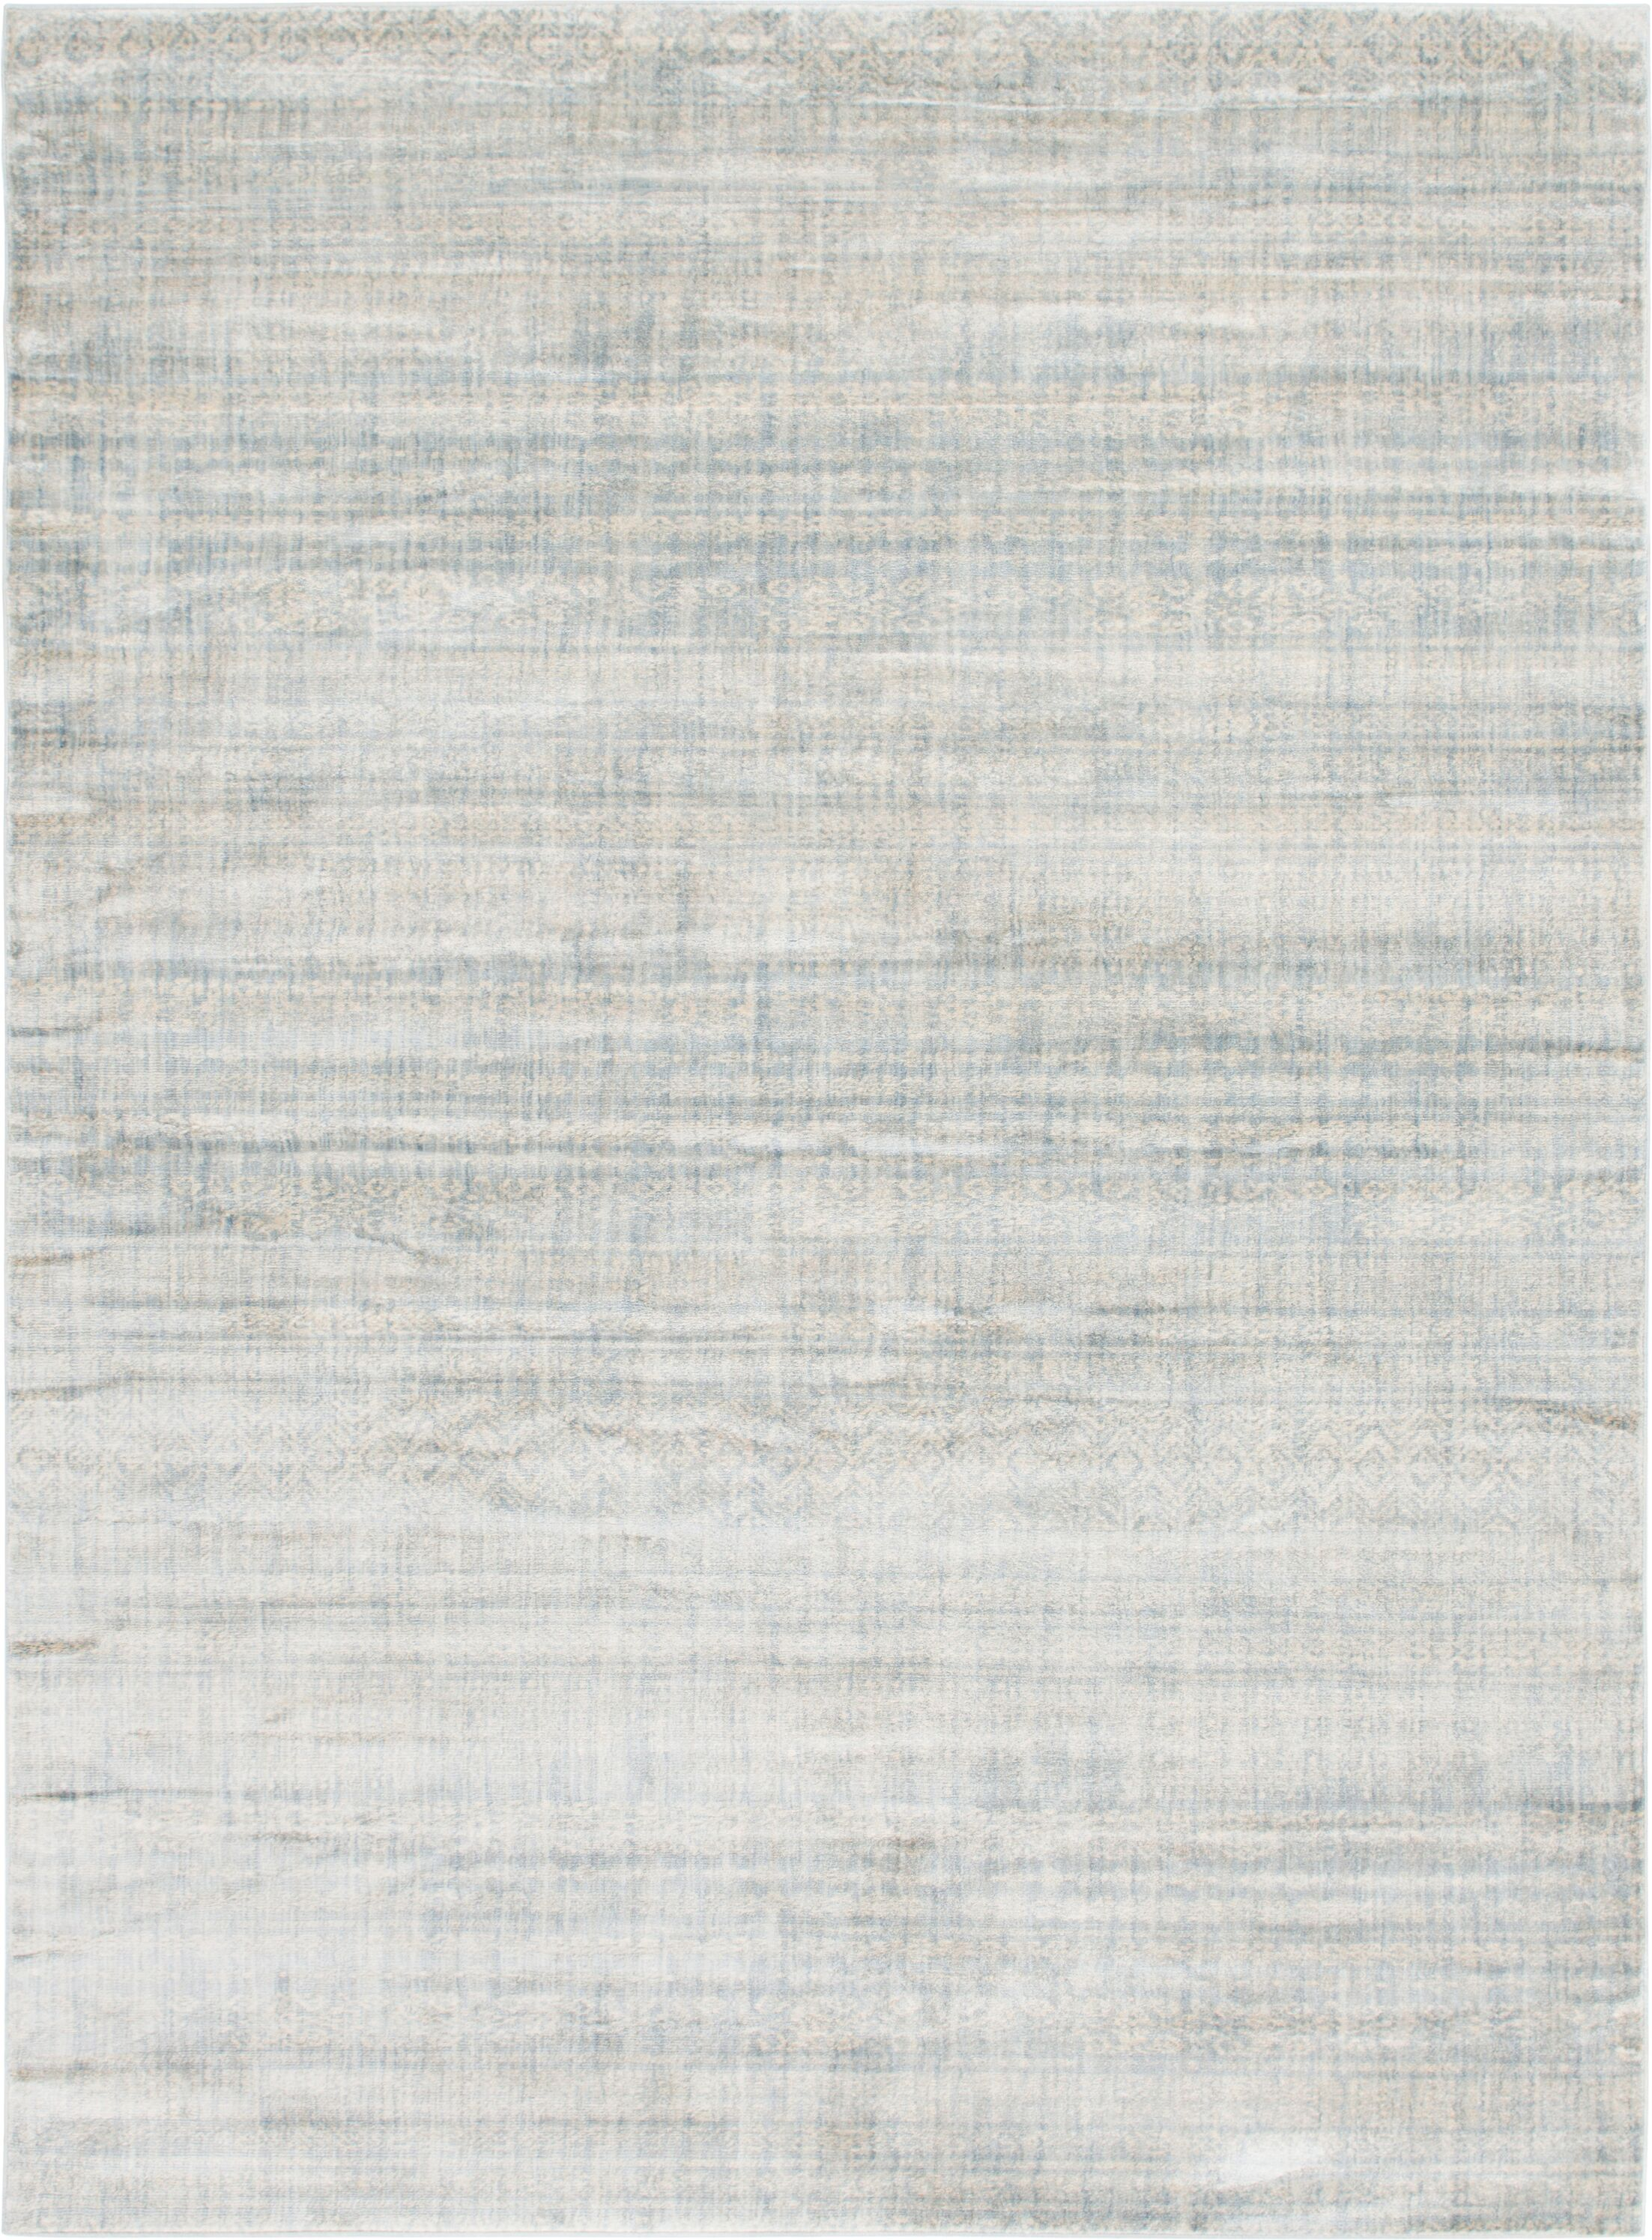 Montross Silver Mist Area Rug Rug Size: Rectangle 9' x 12'